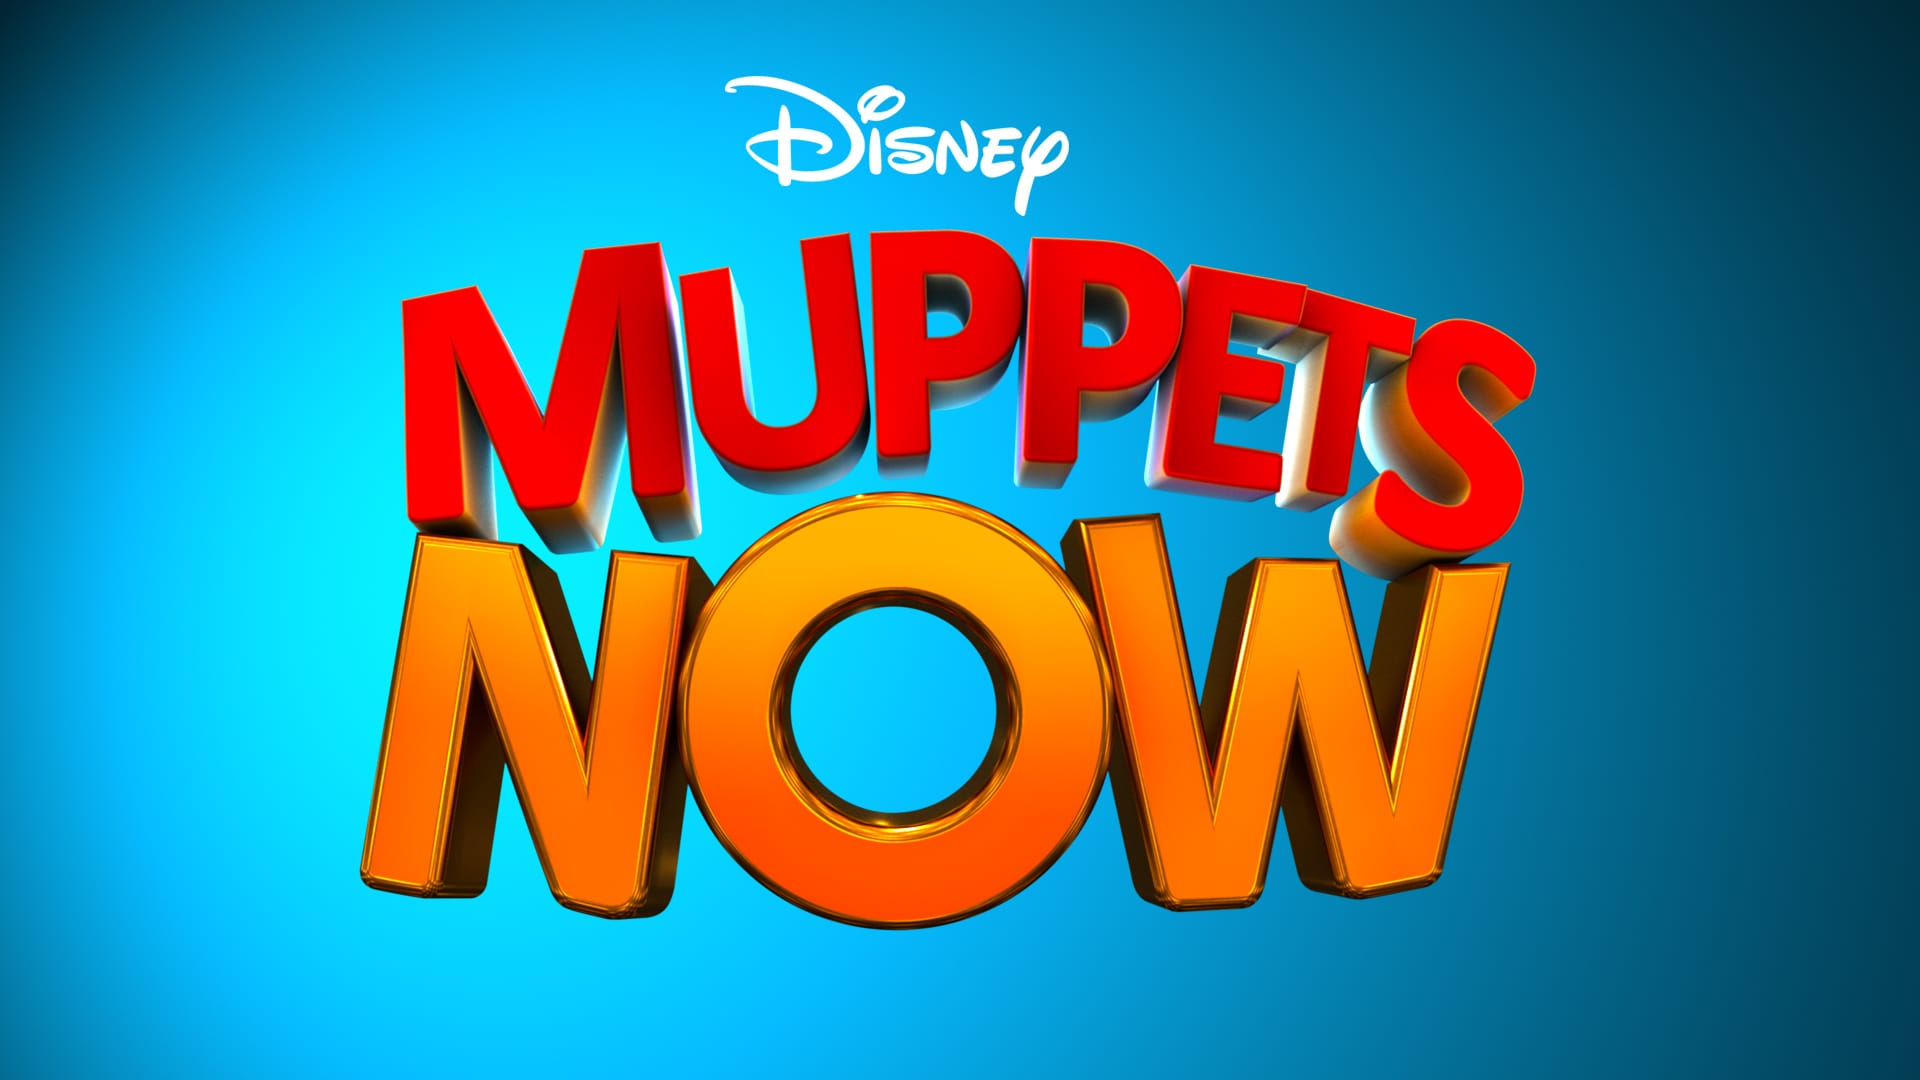 'Muppets Now' S1E2 'Fever Pitch' review: Sensational skits